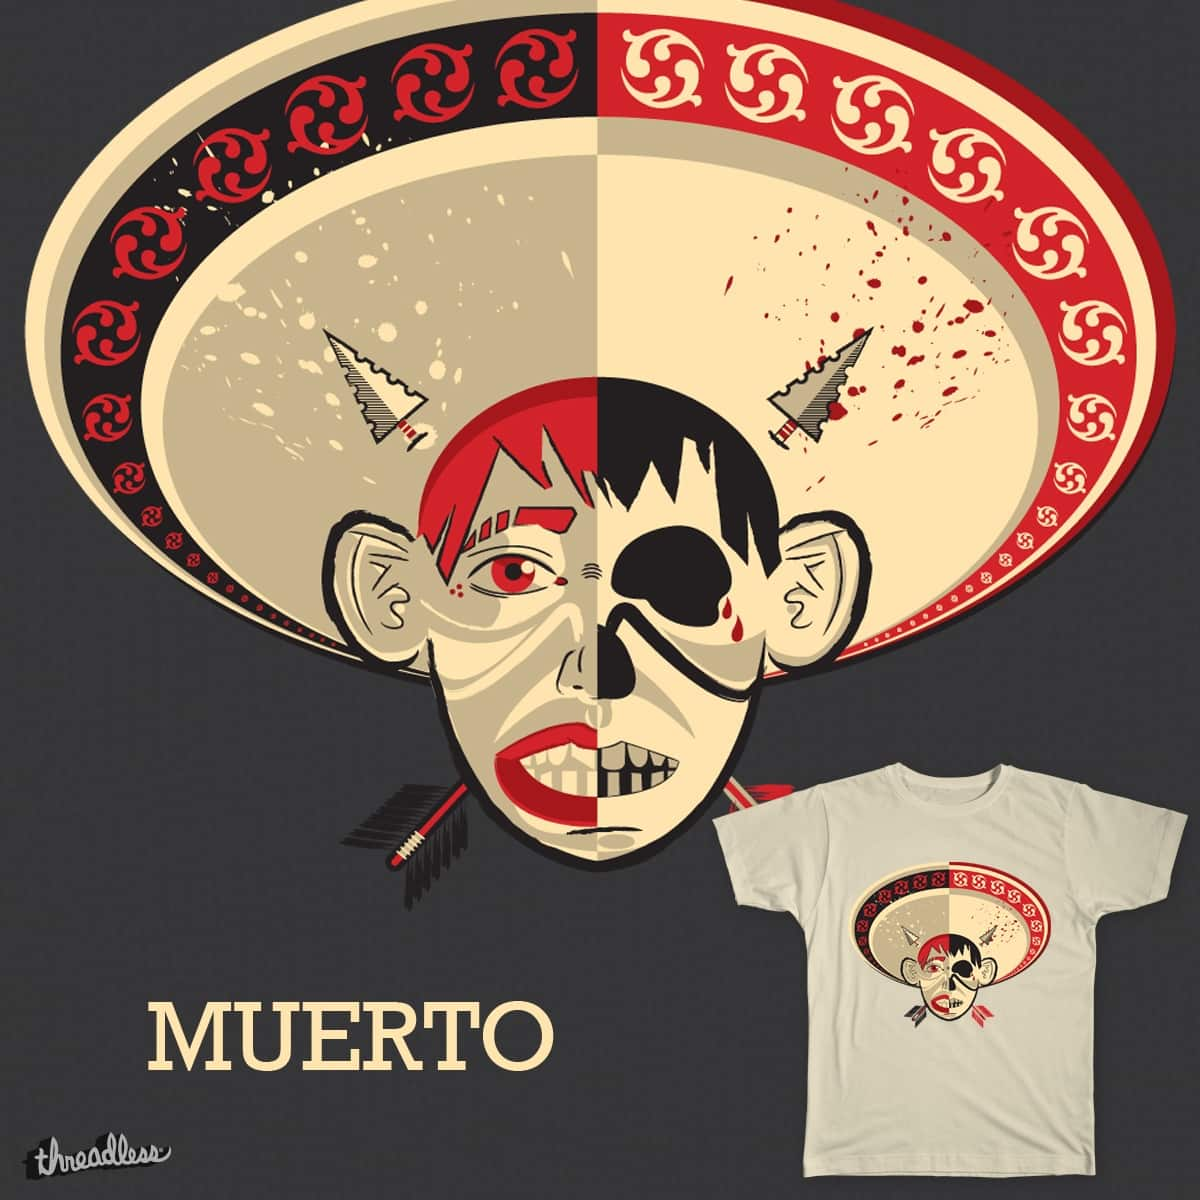 Muerto by DonCarlos on Threadless